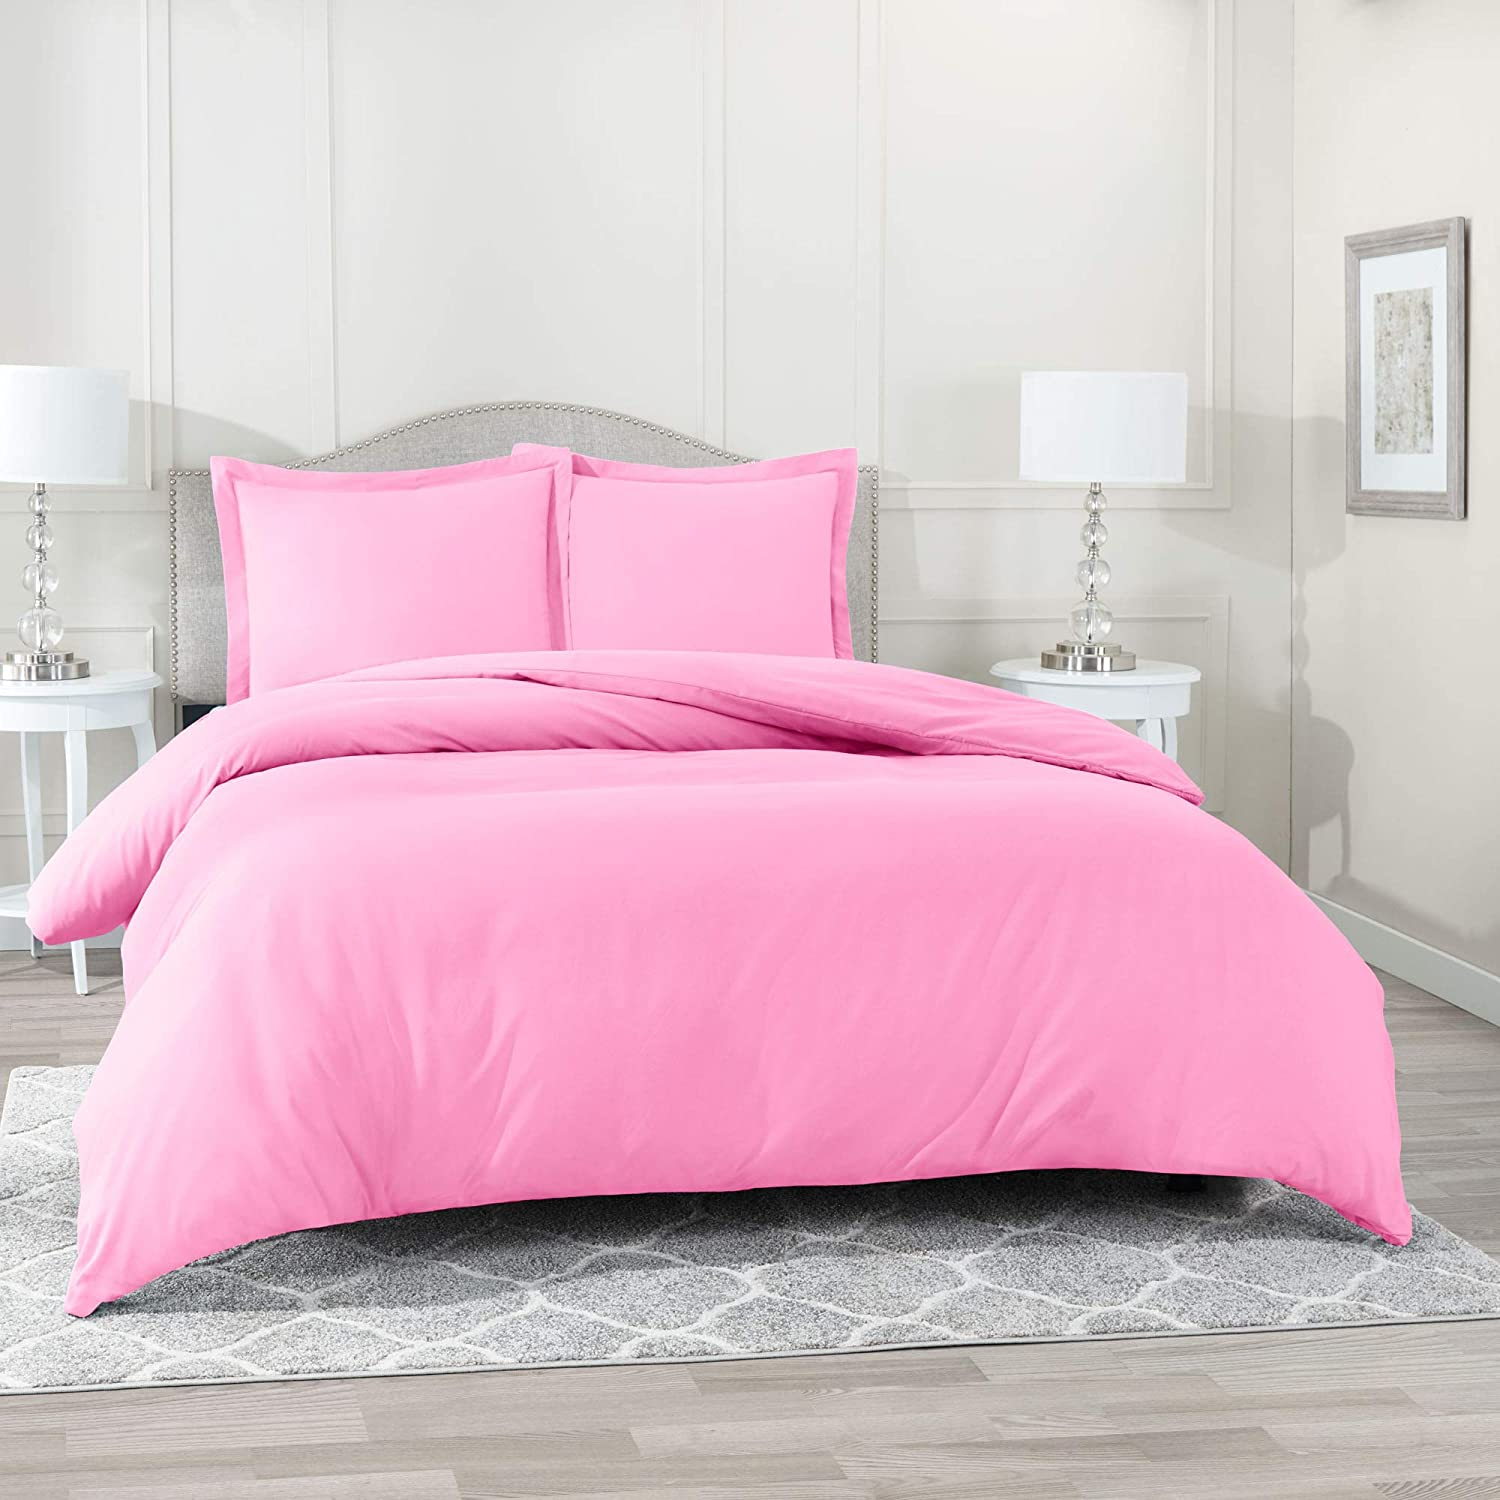 """Nestl Bedding Duvet Cover 3 Piece Set – Ultra Soft Double Brushed Microfiber Hotel Collection – Comforter Cover with Button Closure and 2 Pillow Shams, Light Pink - Full (Double) 80""""x90"""""""